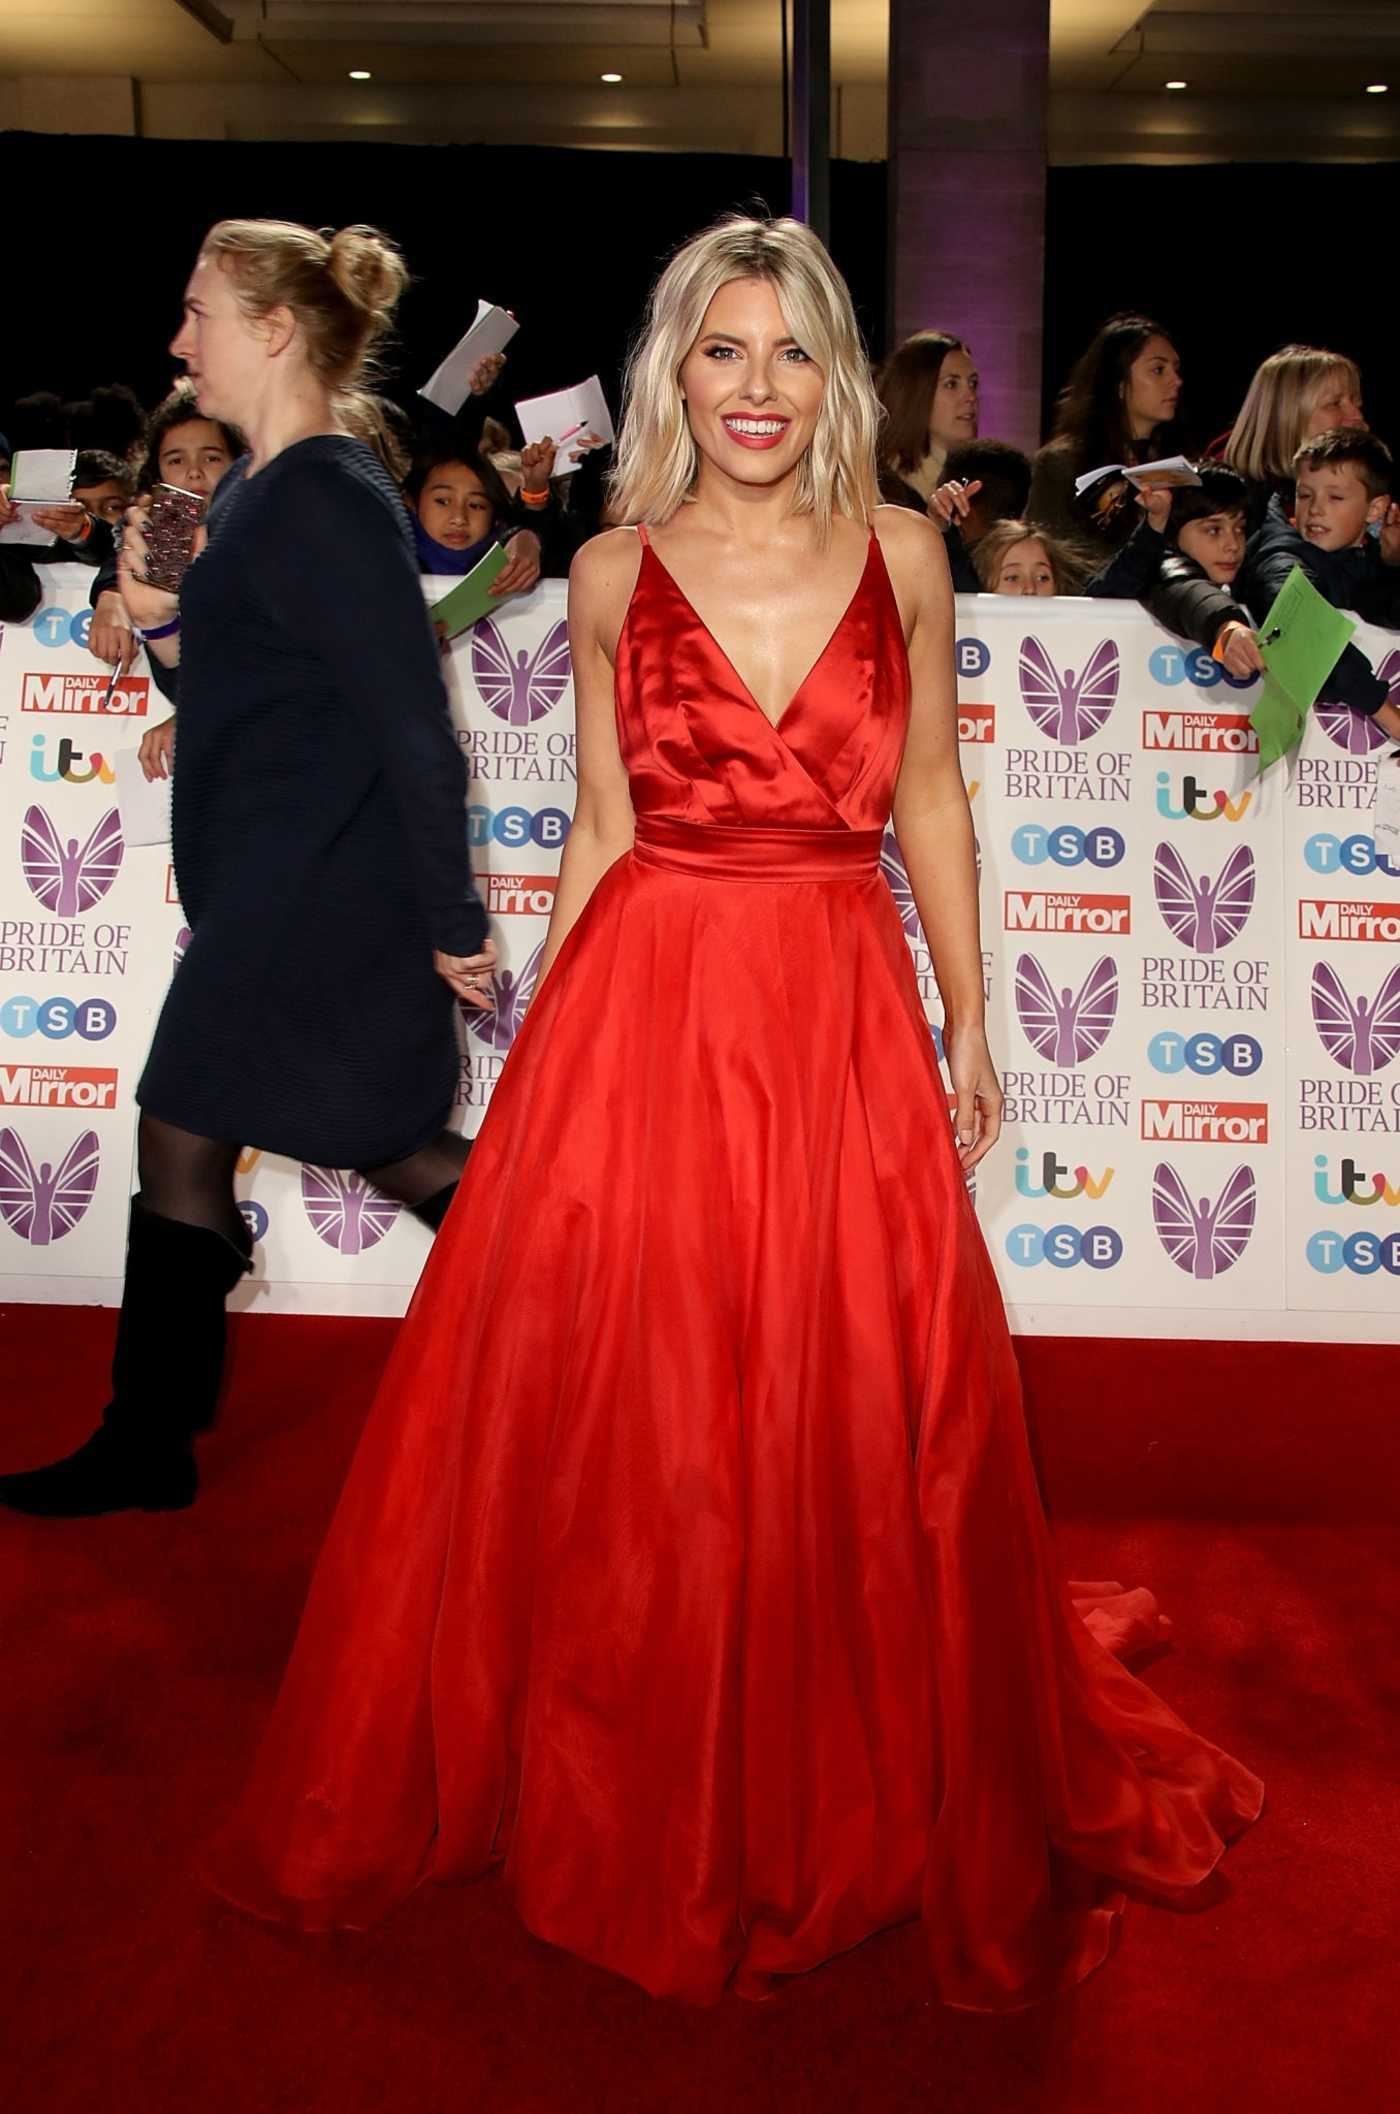 Mollie King Attends 2018 Pride of Britain Awards in London 10/29/2018